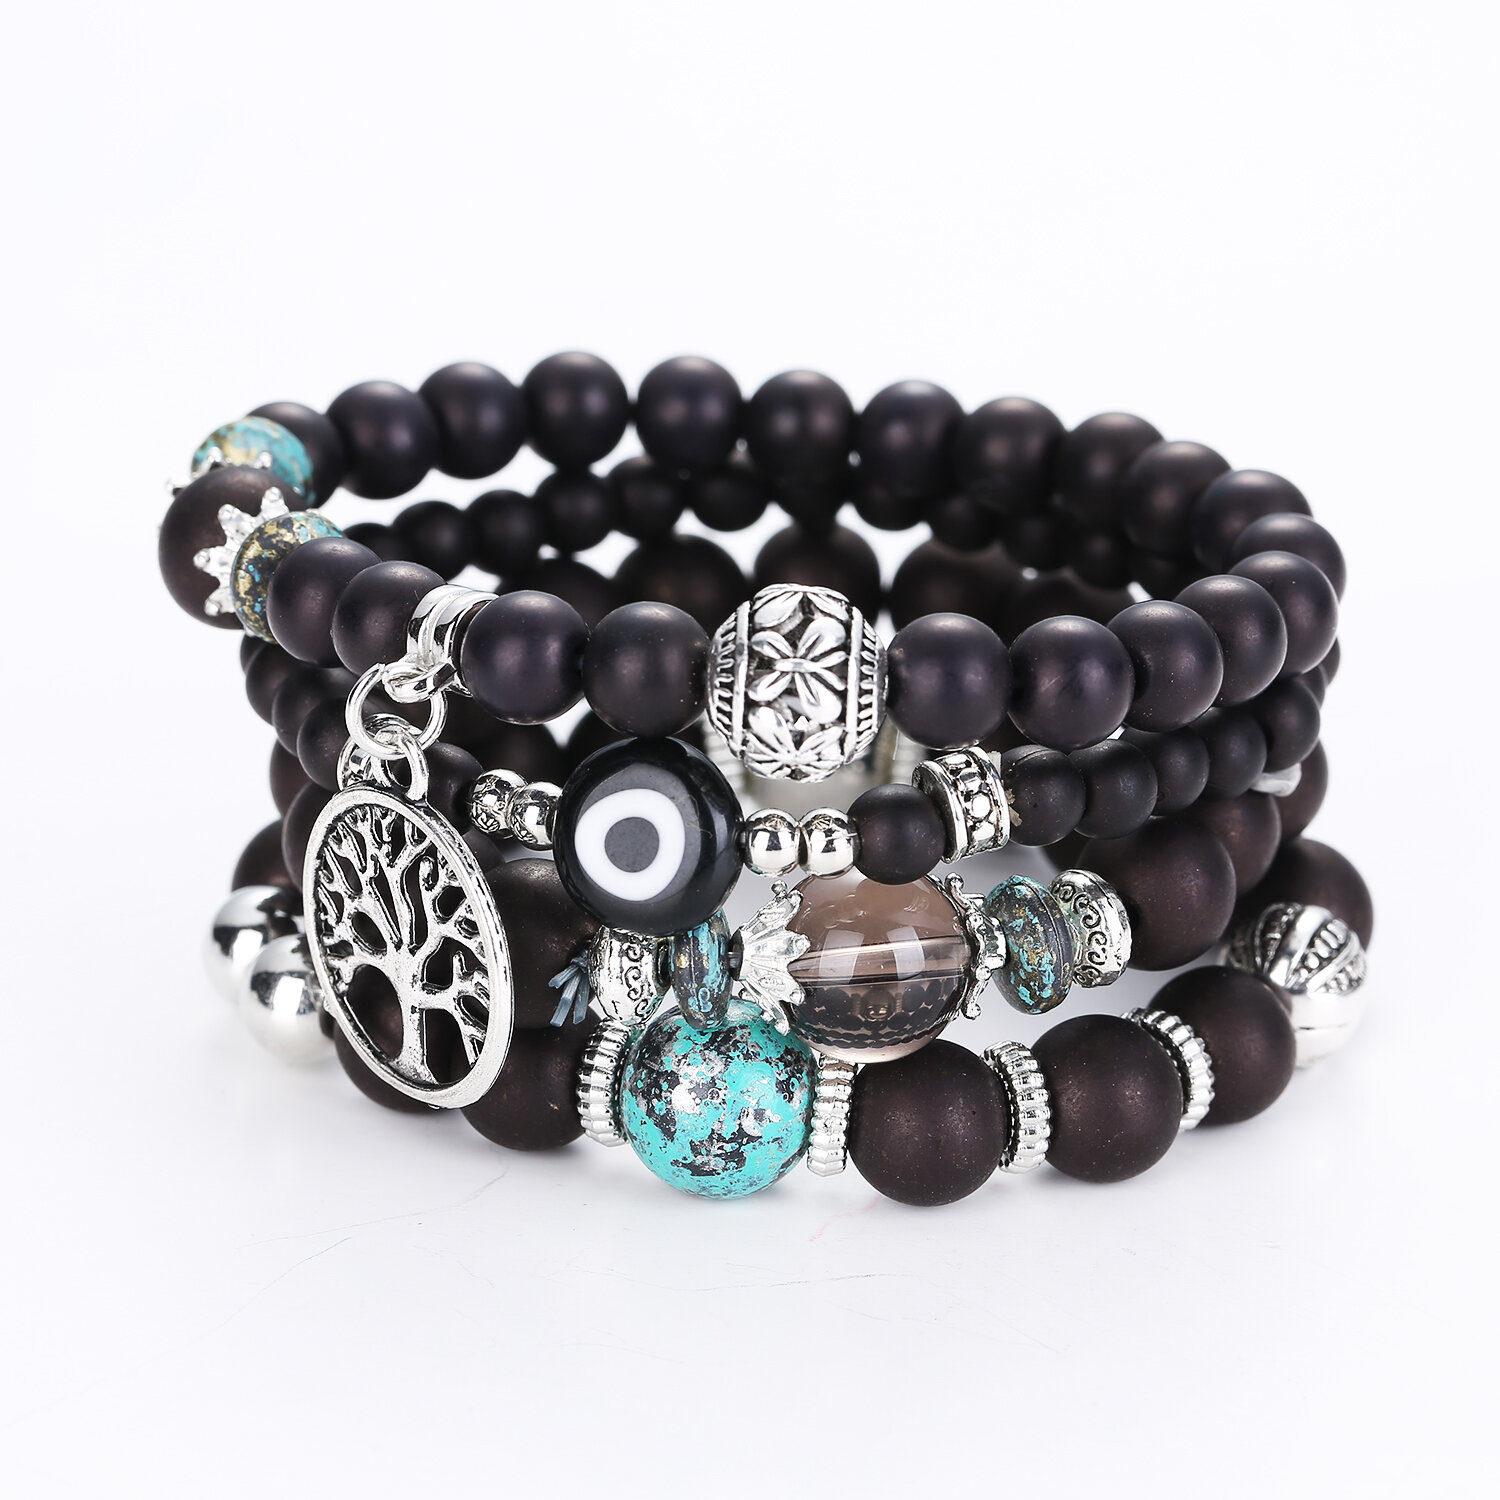 Bohemian Hollow Tree of Life Elastic Beads Multilayer Bangle Bracelets Gift for Women